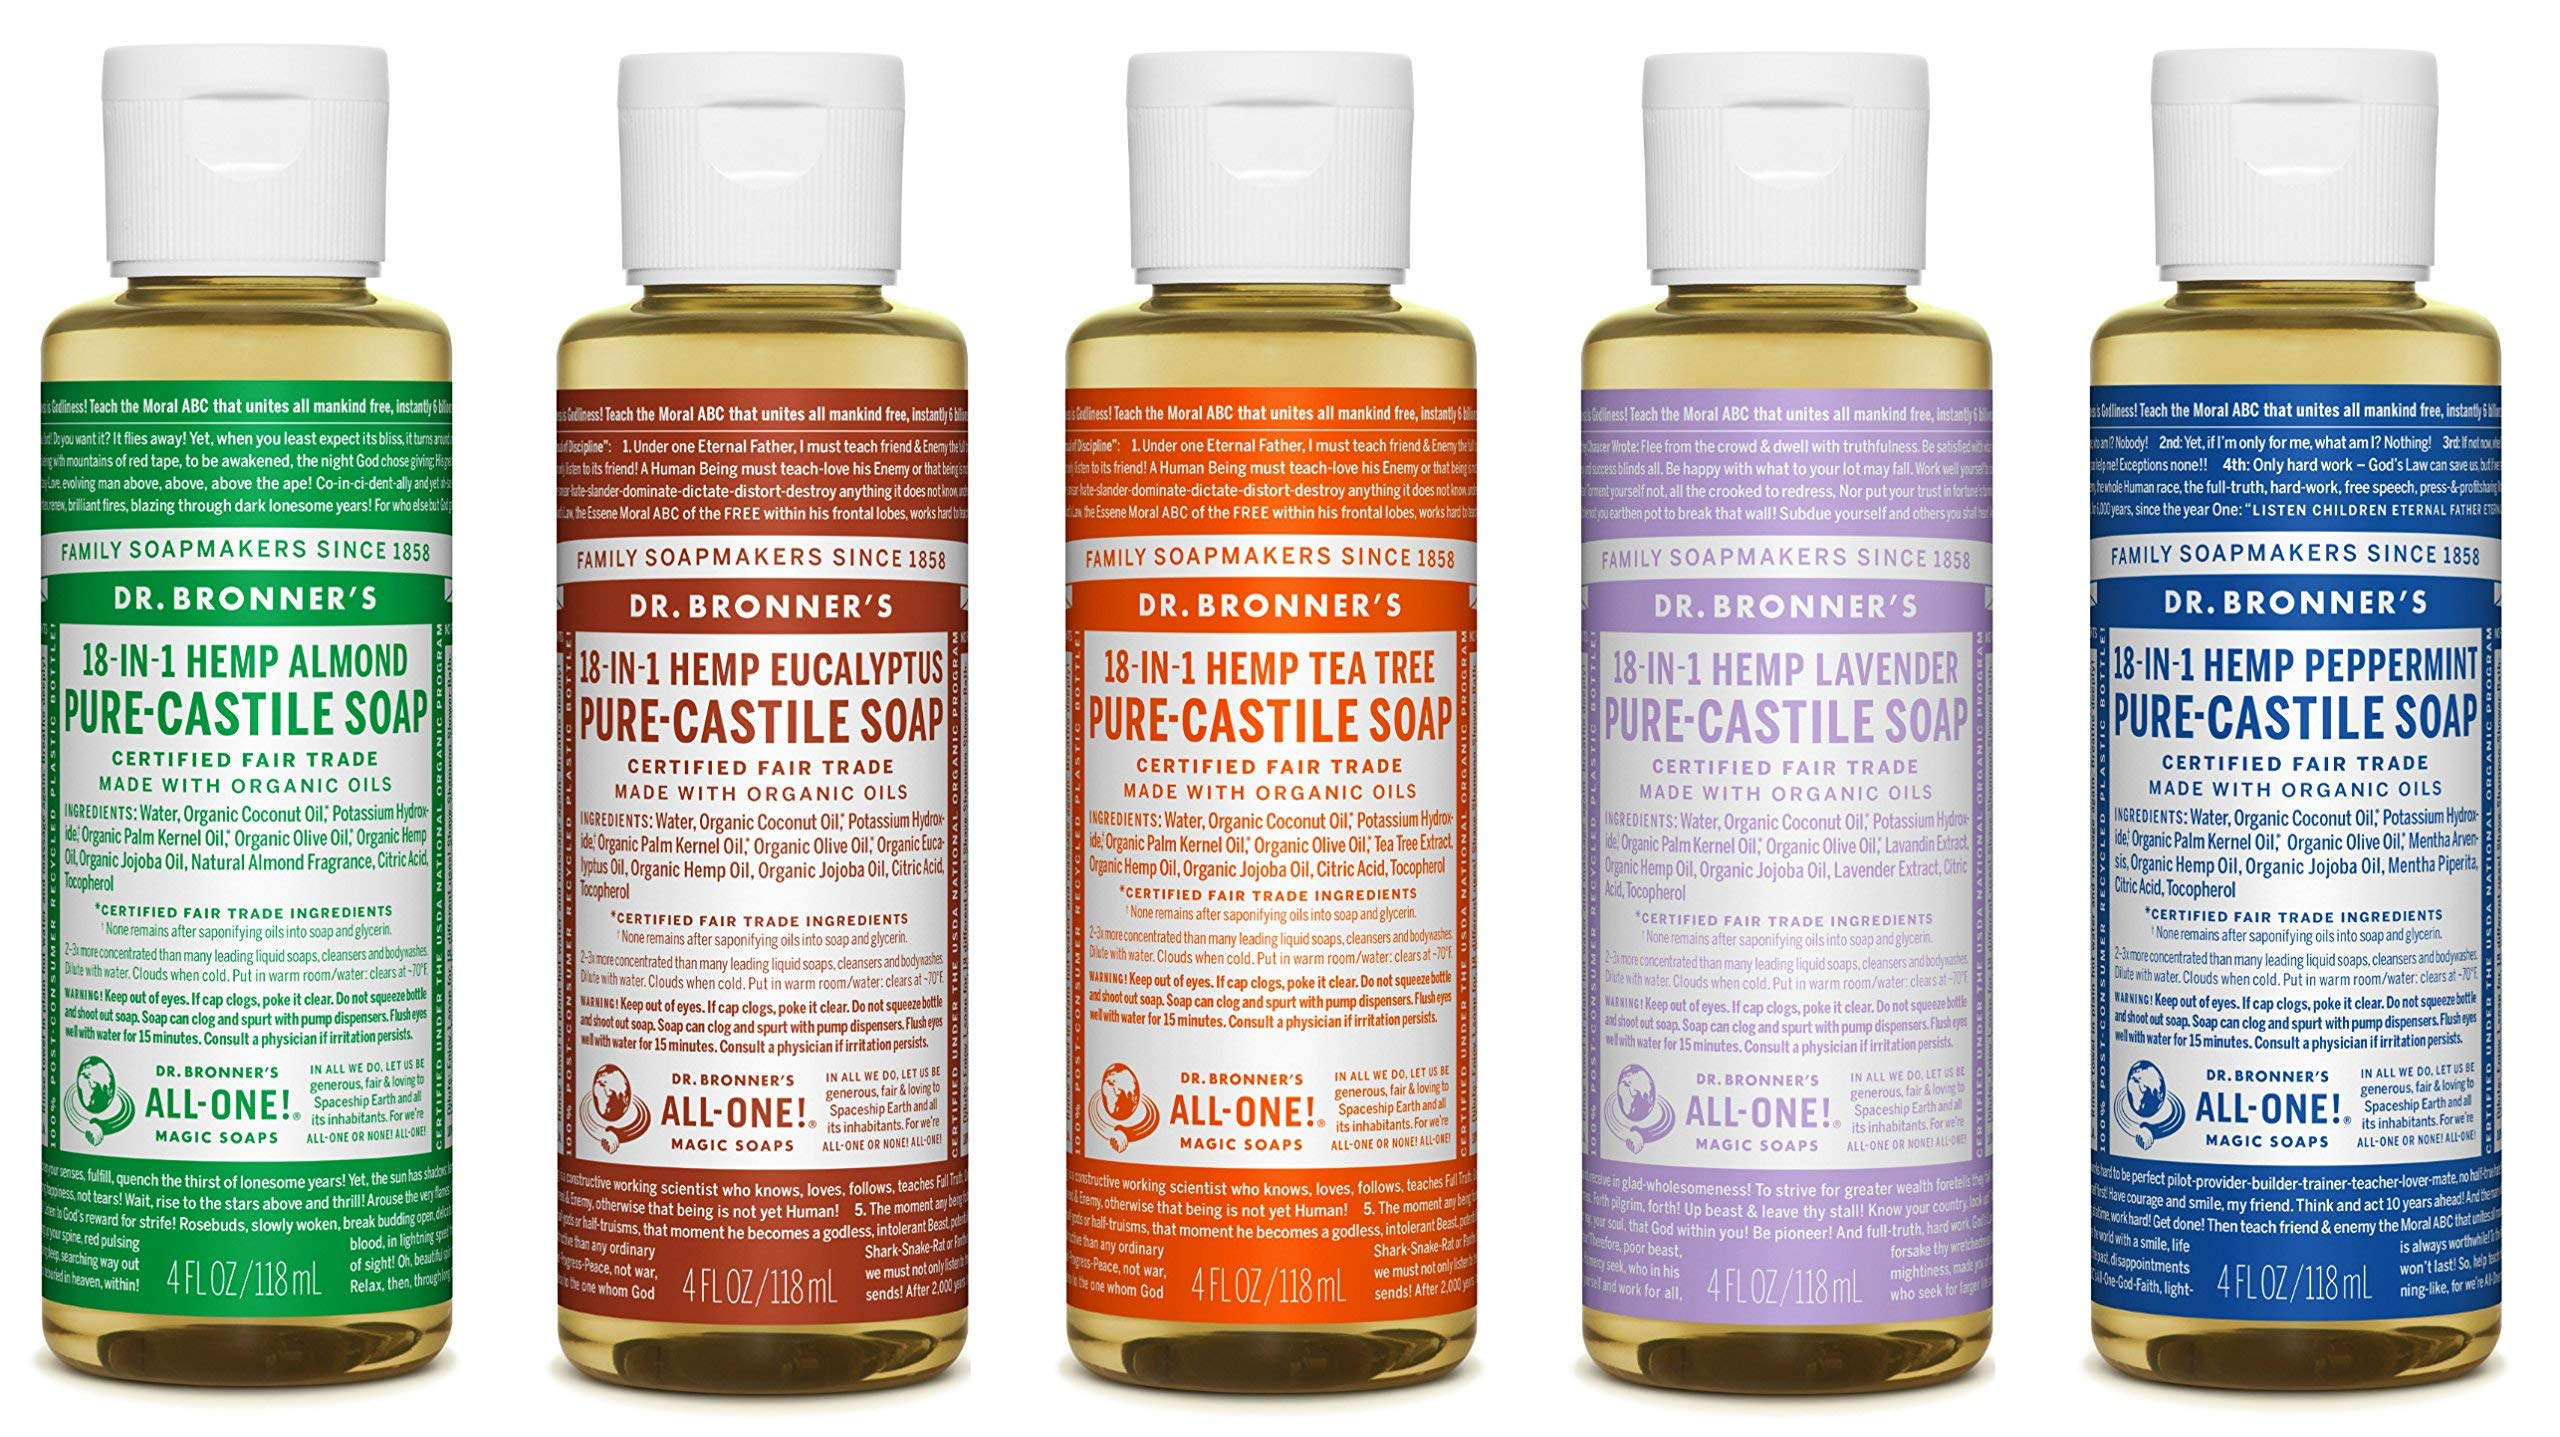 Dr. Bronner's 4 Ounce Sampler- 5 Piece Gift Set. 5, 4 Ounce Castile Liquid Soaps in Almond, Eucalyptus, Tea Tree, Lavender, and Peppermint by Dr. Bronner's